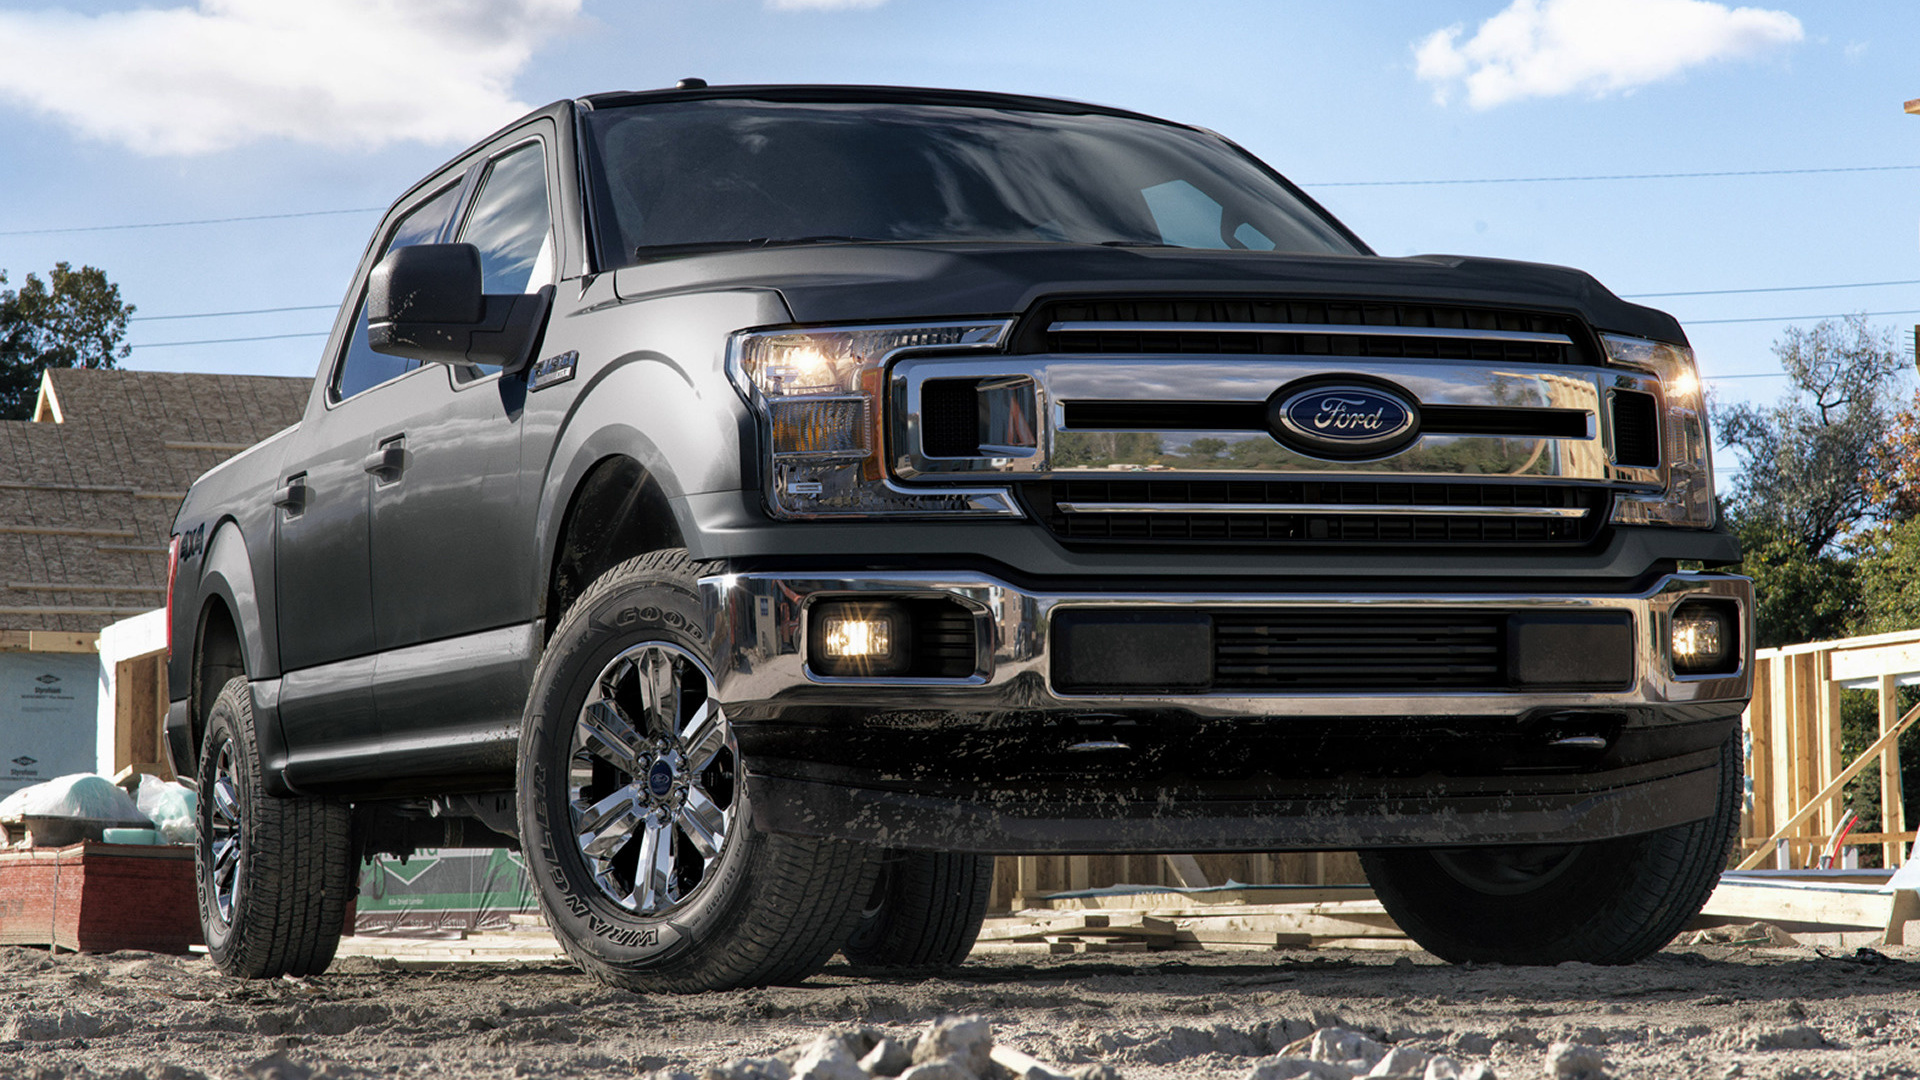 Ford F-150 XLT SuperCrew (2018) Wallpapers and HD Images - Car Pixel